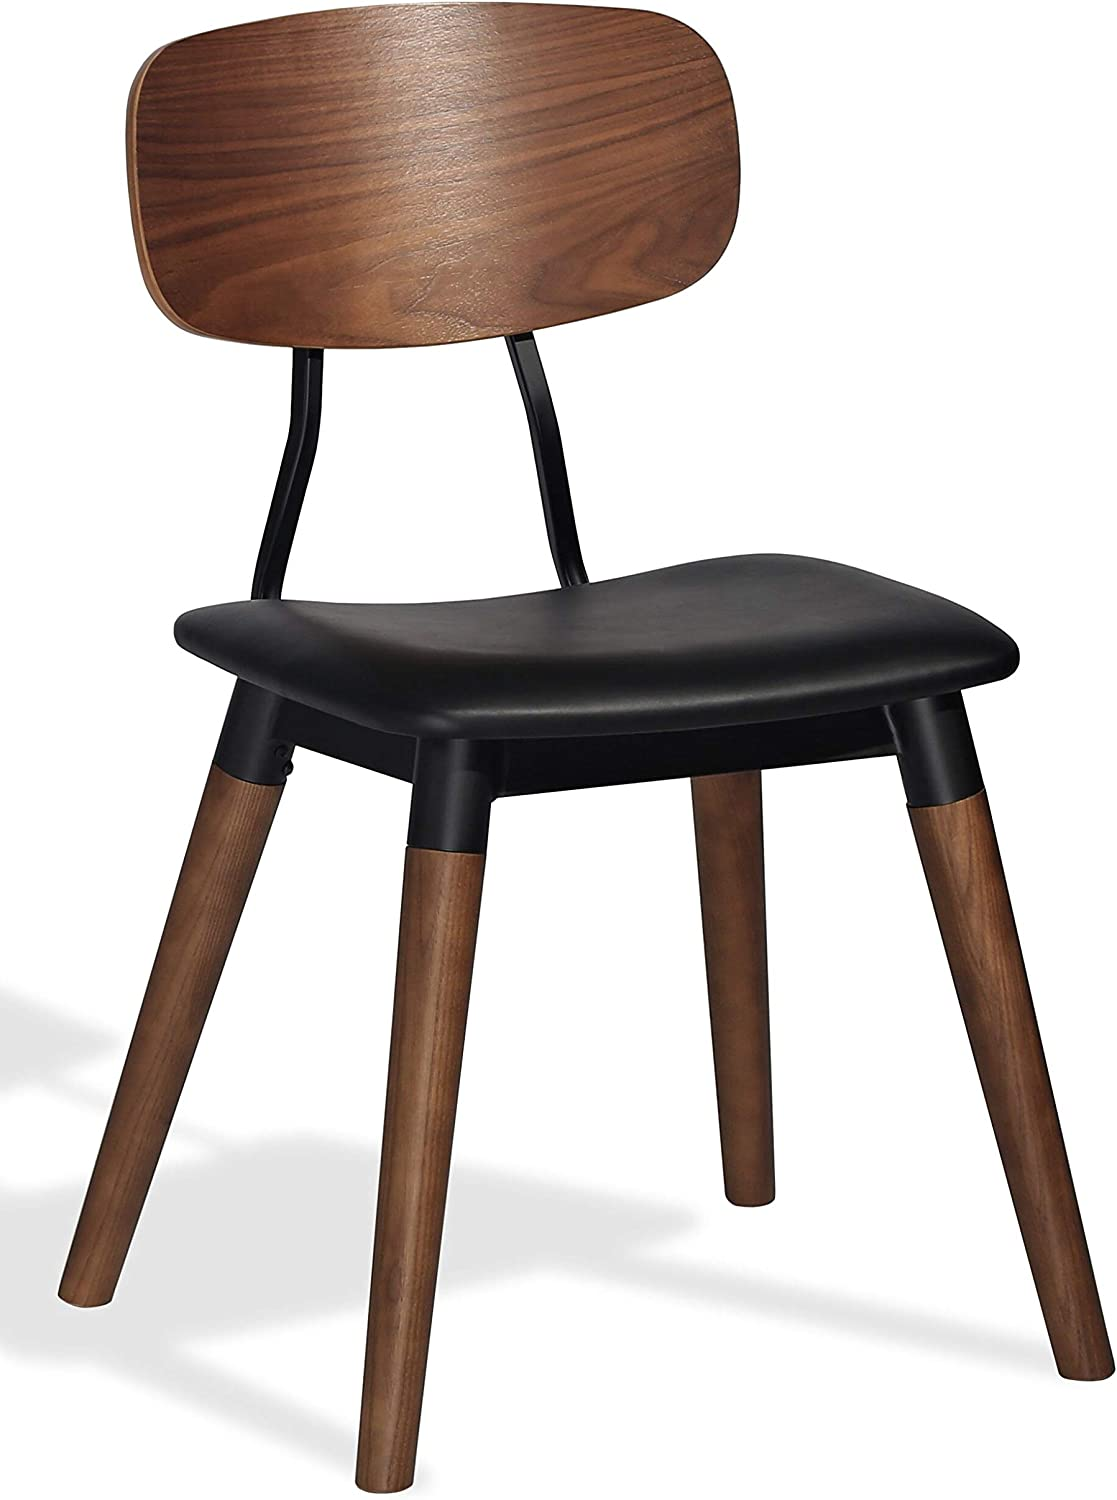 Harmony Modern Edna Dining Chair in a Black High Grade Faux Leather (PPM-S) Soft Seat with a Solid Ash Walnut Finish with a Black Frame